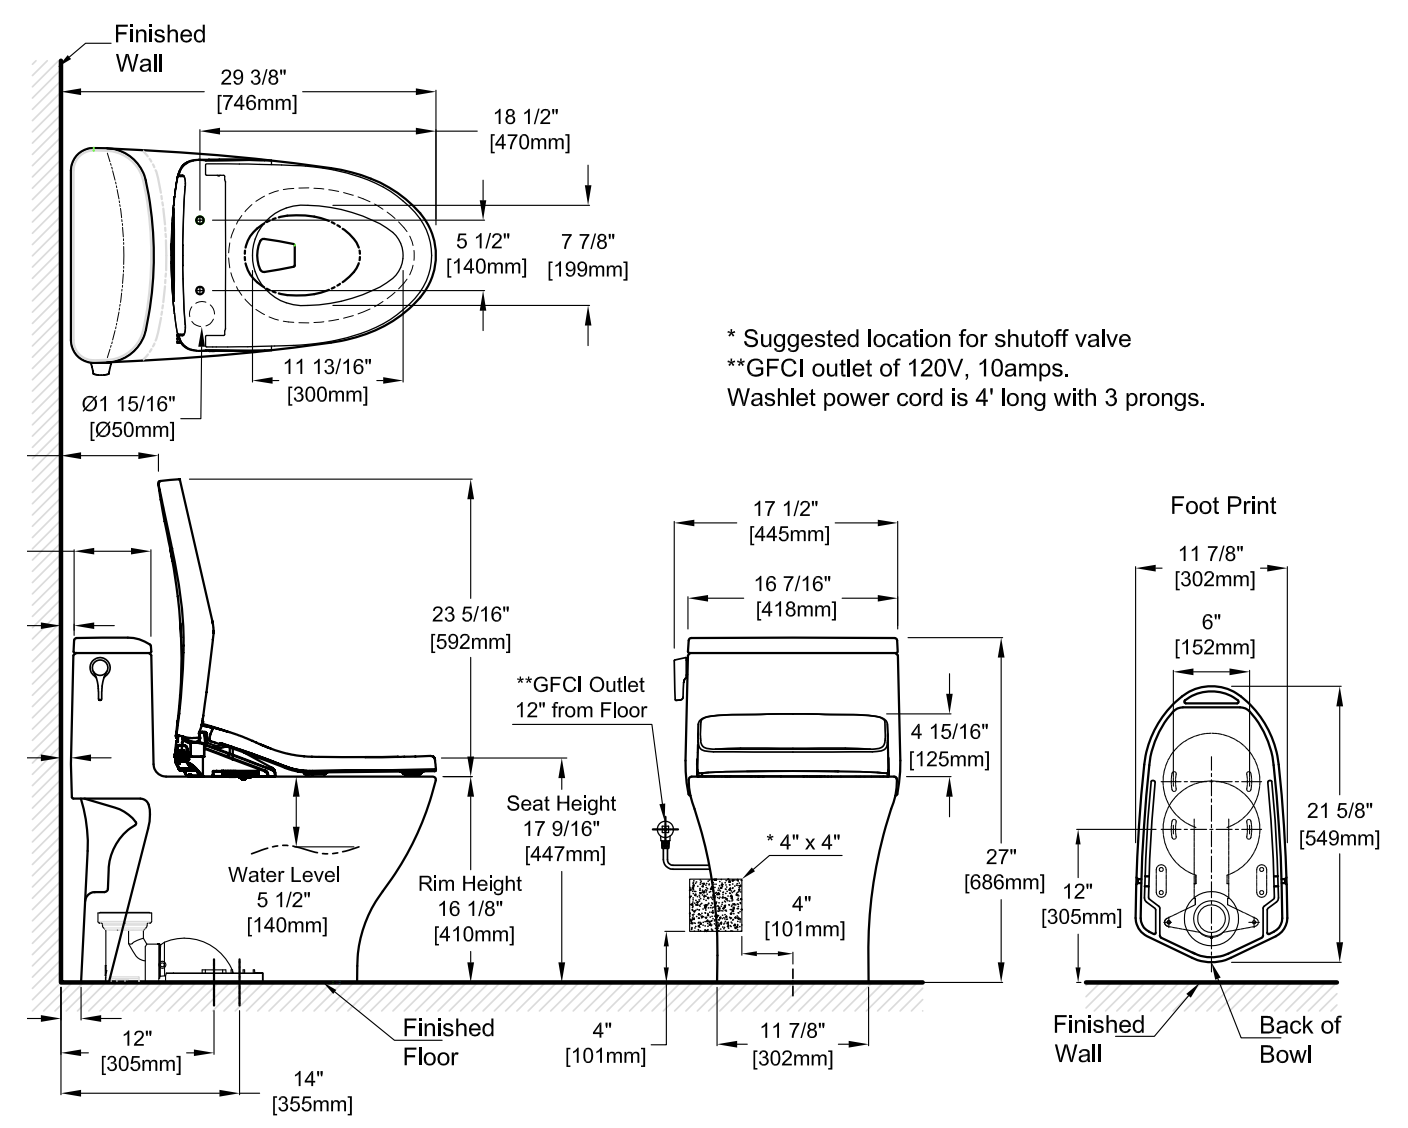 nexus-washlet-s500e-one-piece-toilet-1.28-gpf-diagram.png